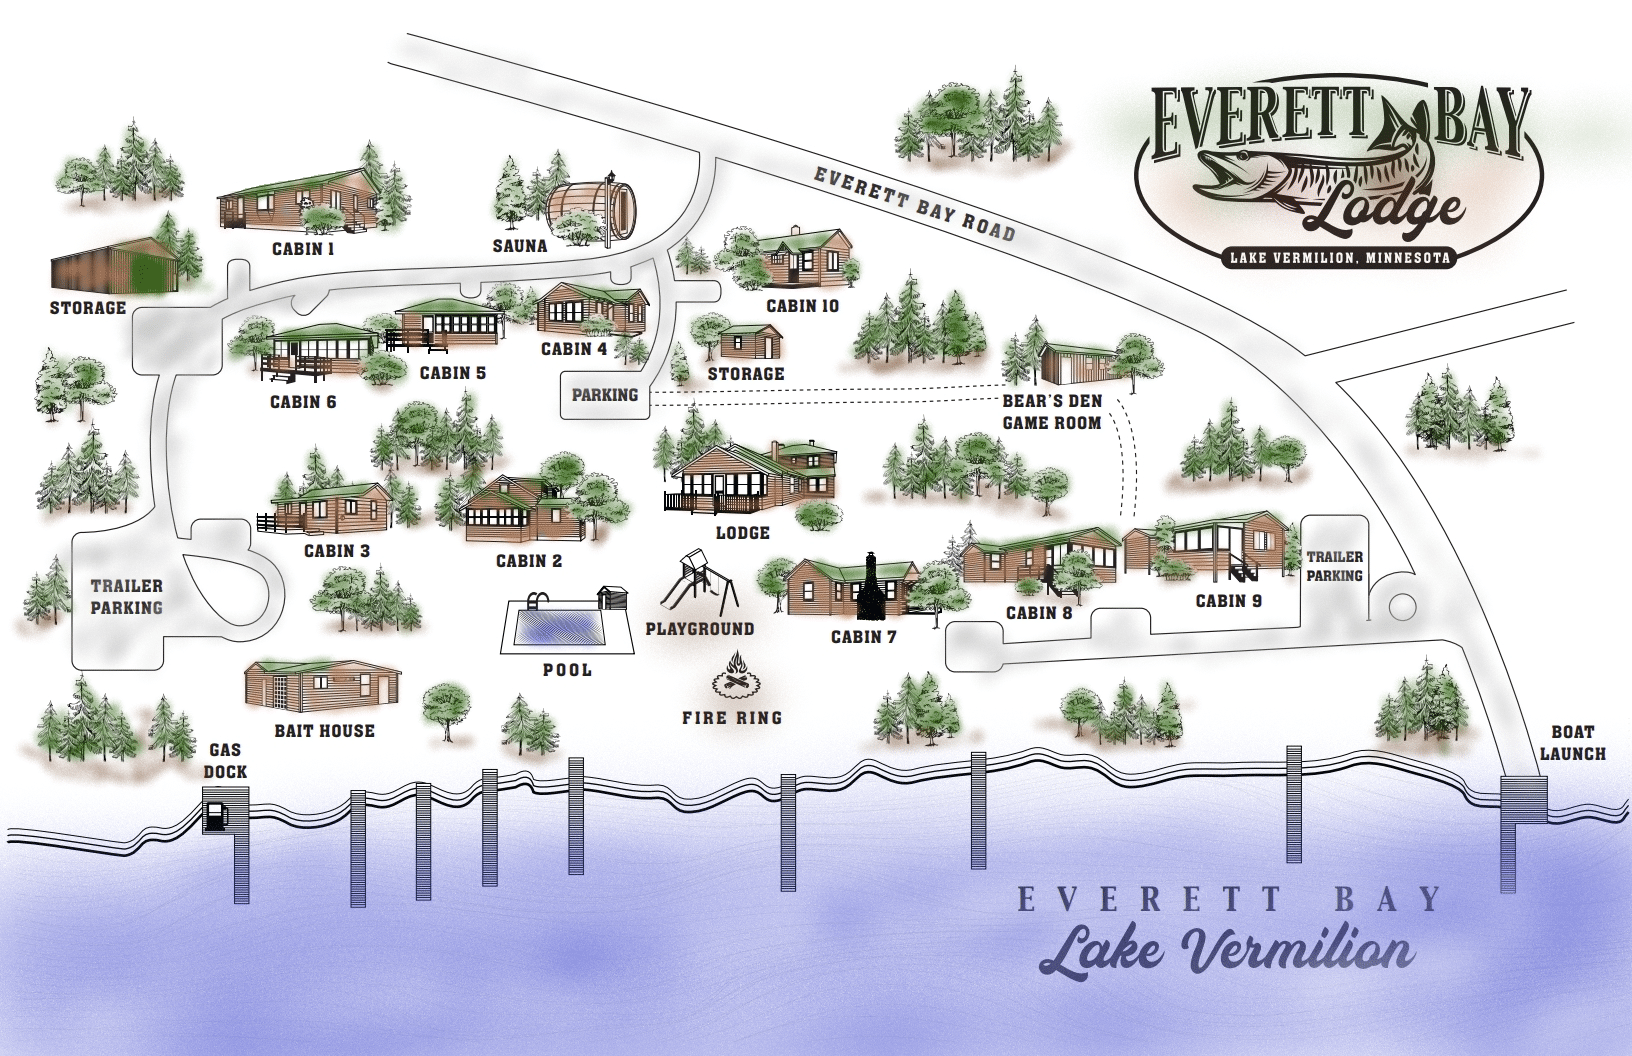 Everett Bay Lodge Property Map